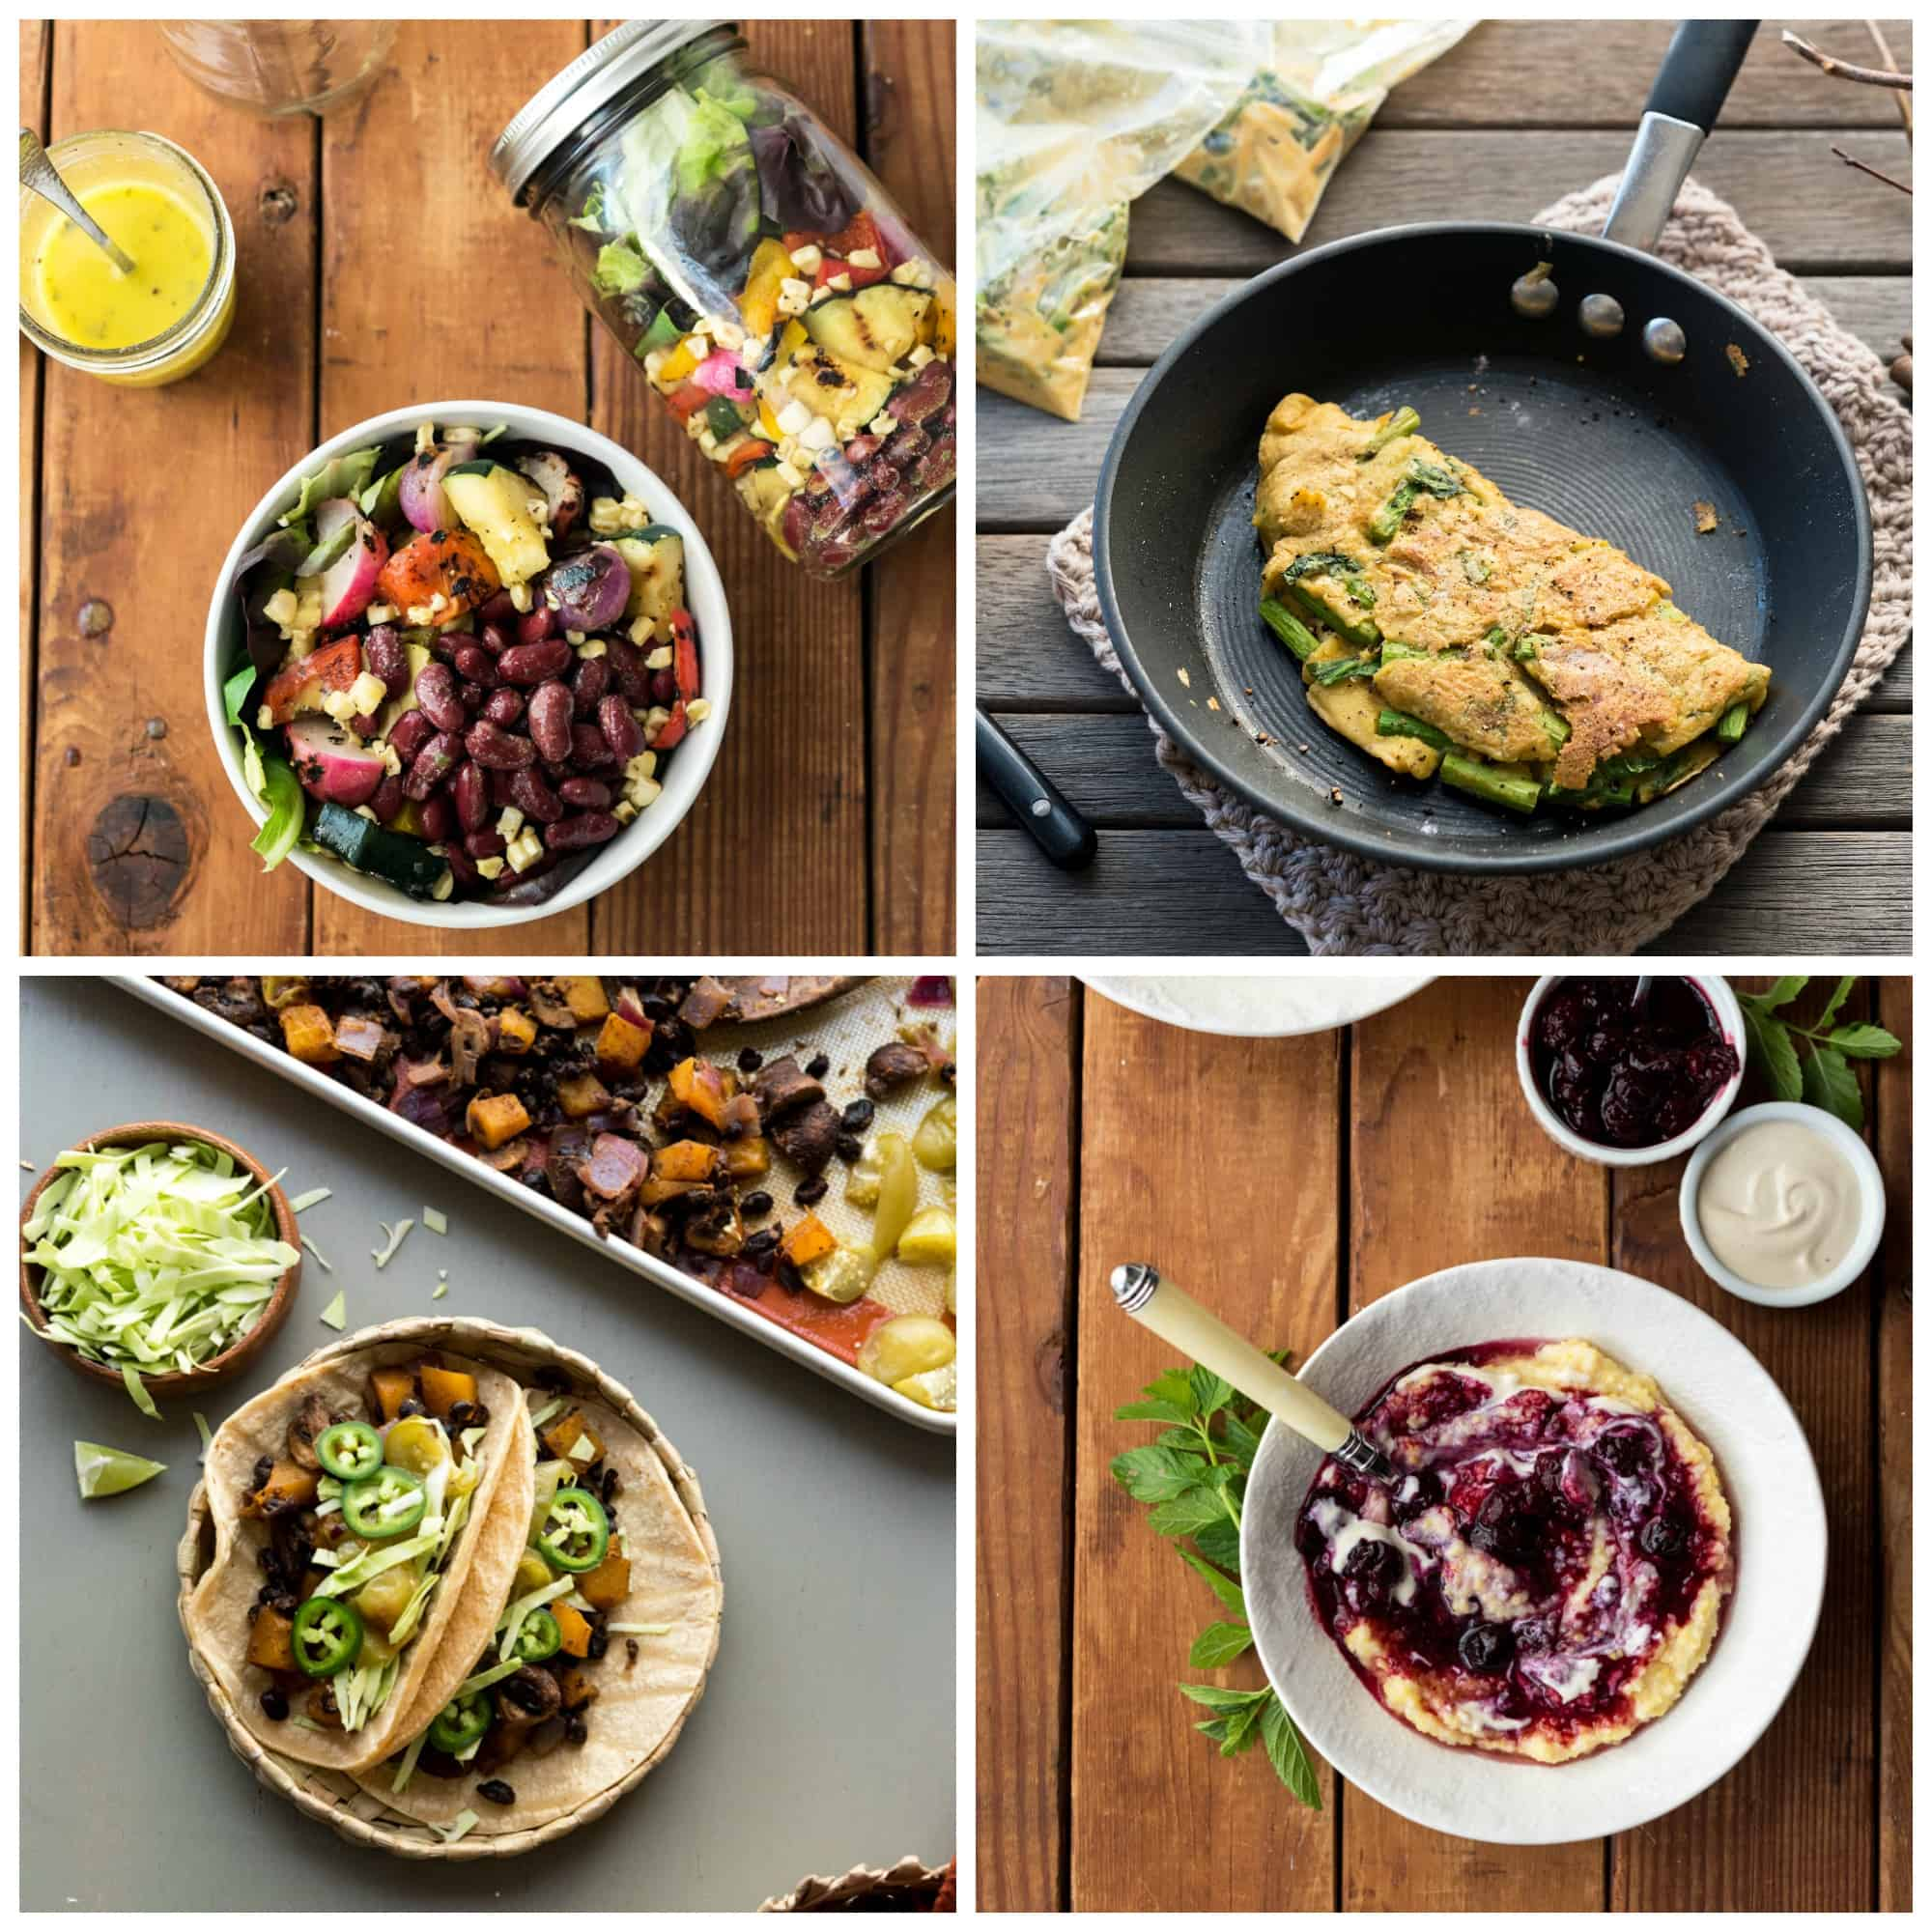 Collage of 4 photos from the Vegan Yack Attack Cookbook, including Mason Jar Salad, Asparagus Omelette, Berry Polenta, and Fajitas